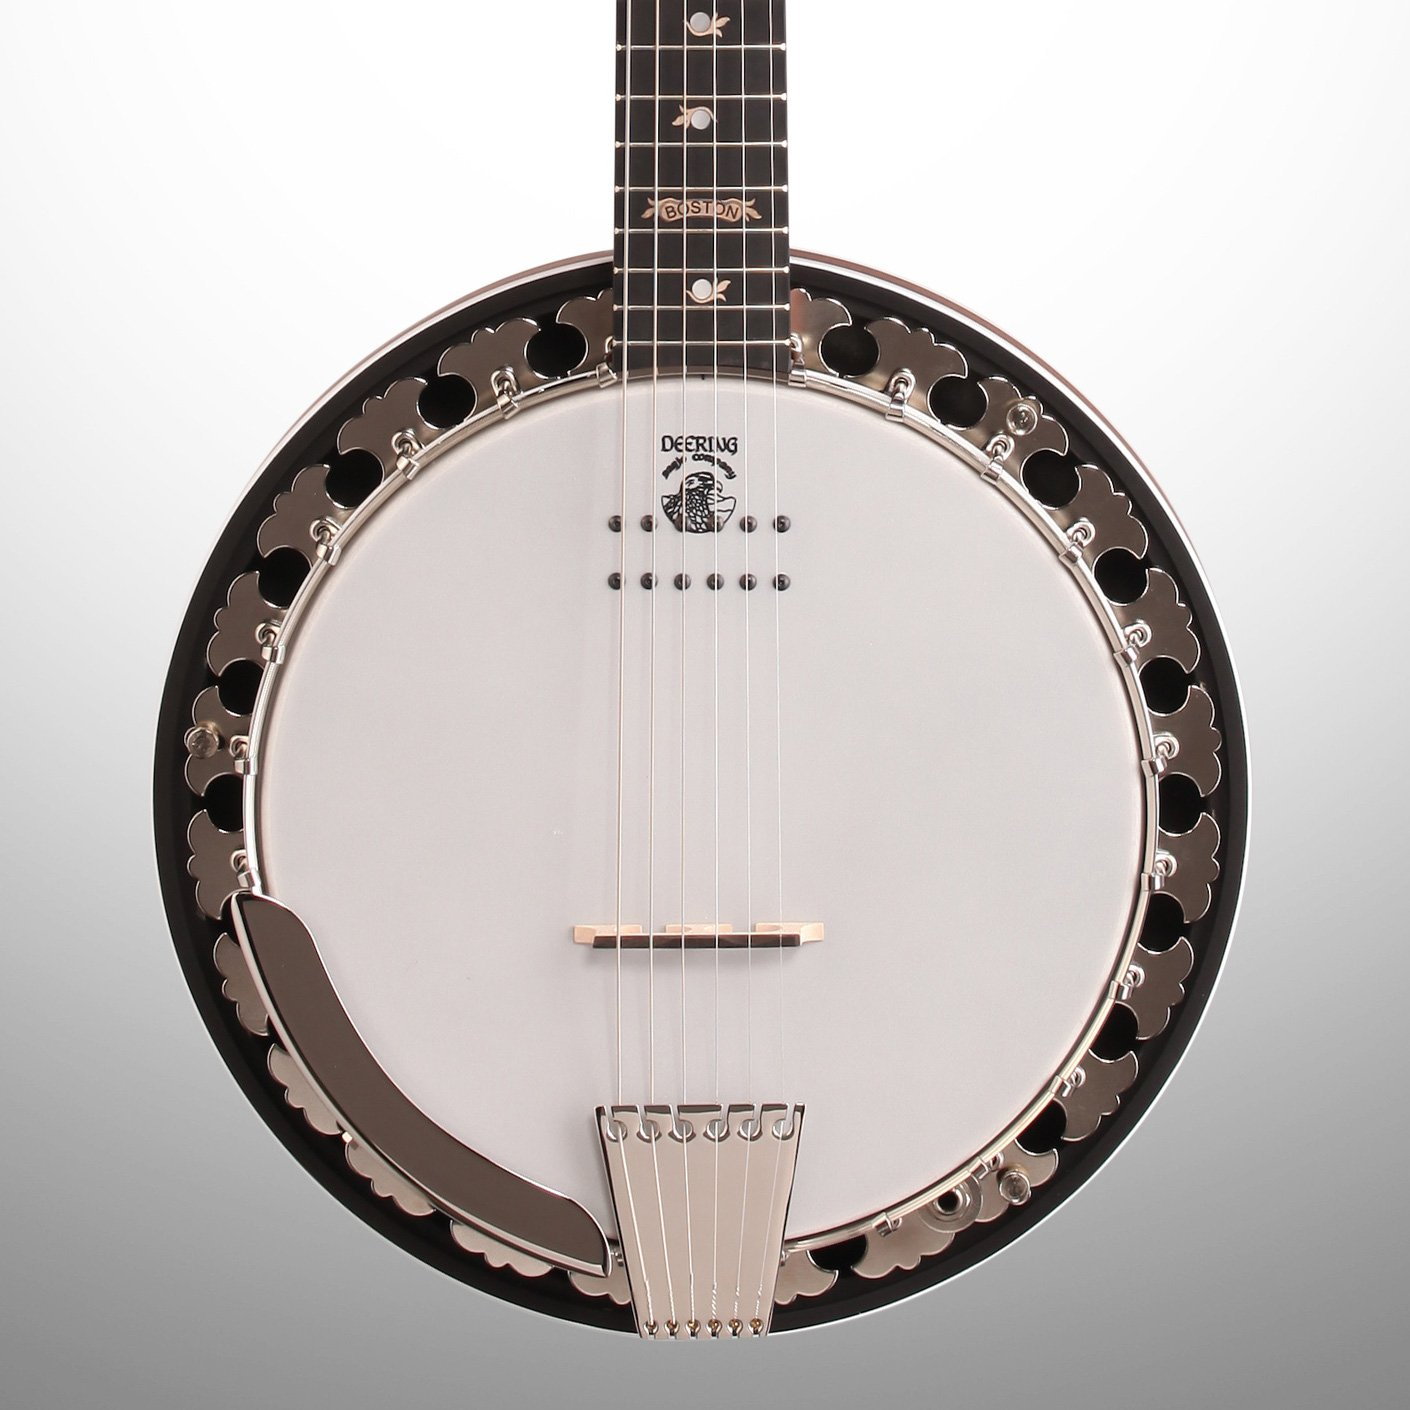 Deering Boston USA Acoustic-Electric Banjo Resonator Guitar, 6-String (with Case)